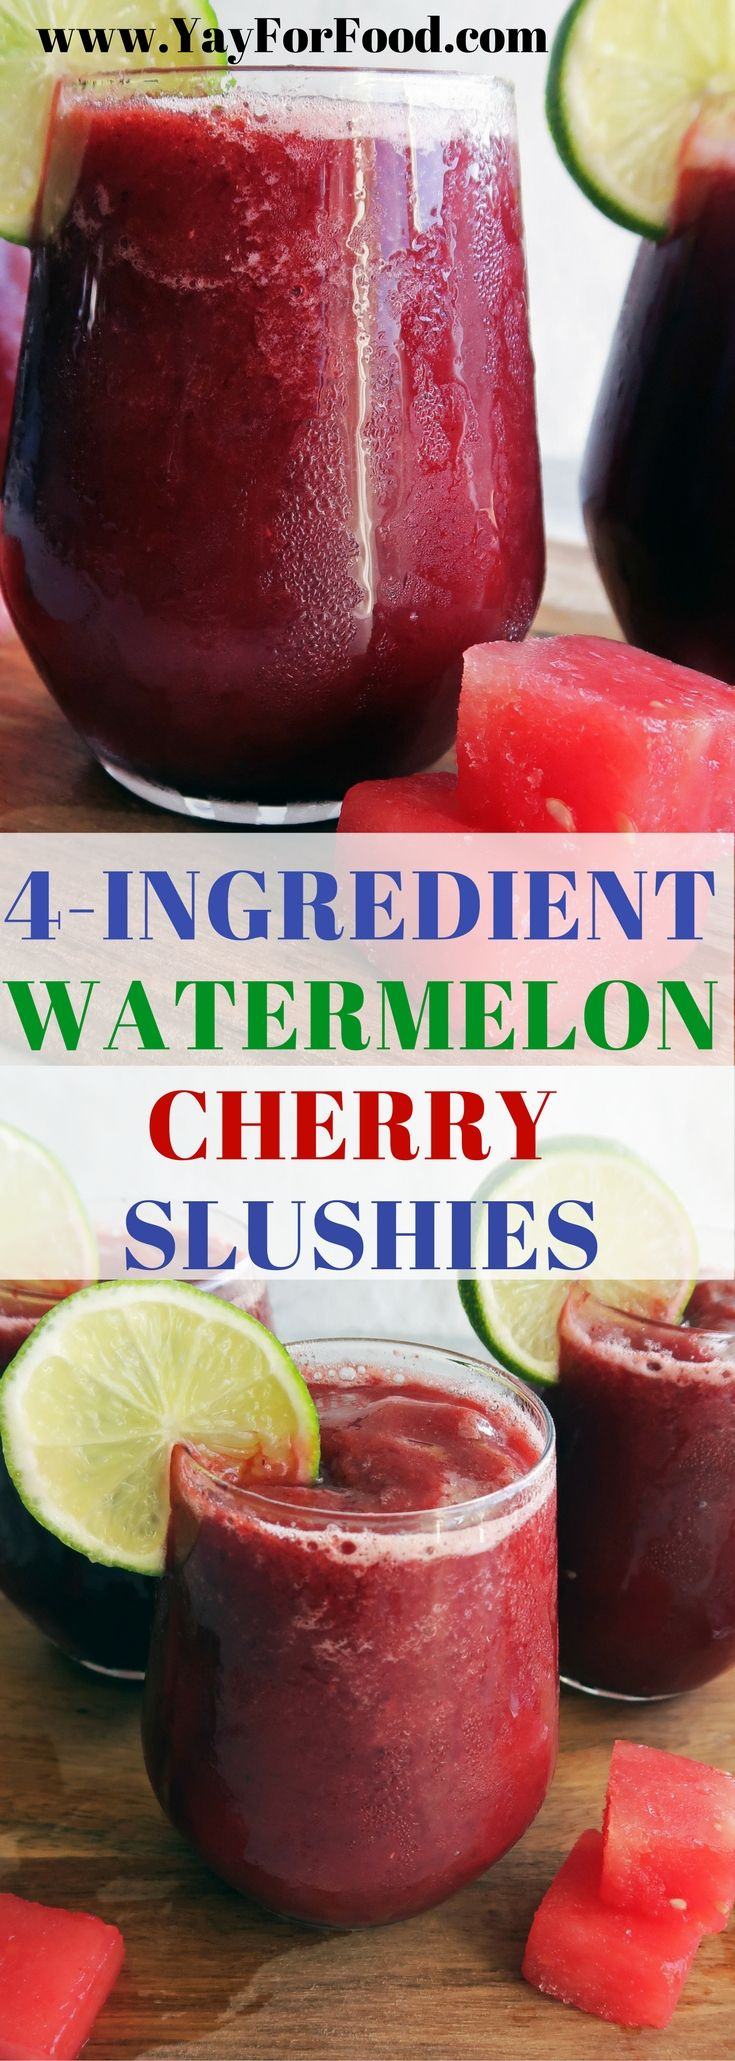 Refreshing, thirst-quenching watermelon cherry slushie is an easy, delicious drink that is wonderful on a hot day! Perfect for the whole family! | Non-alcoholic drinks | slushy | vegetarian | gluten-free | paleo | vegan |